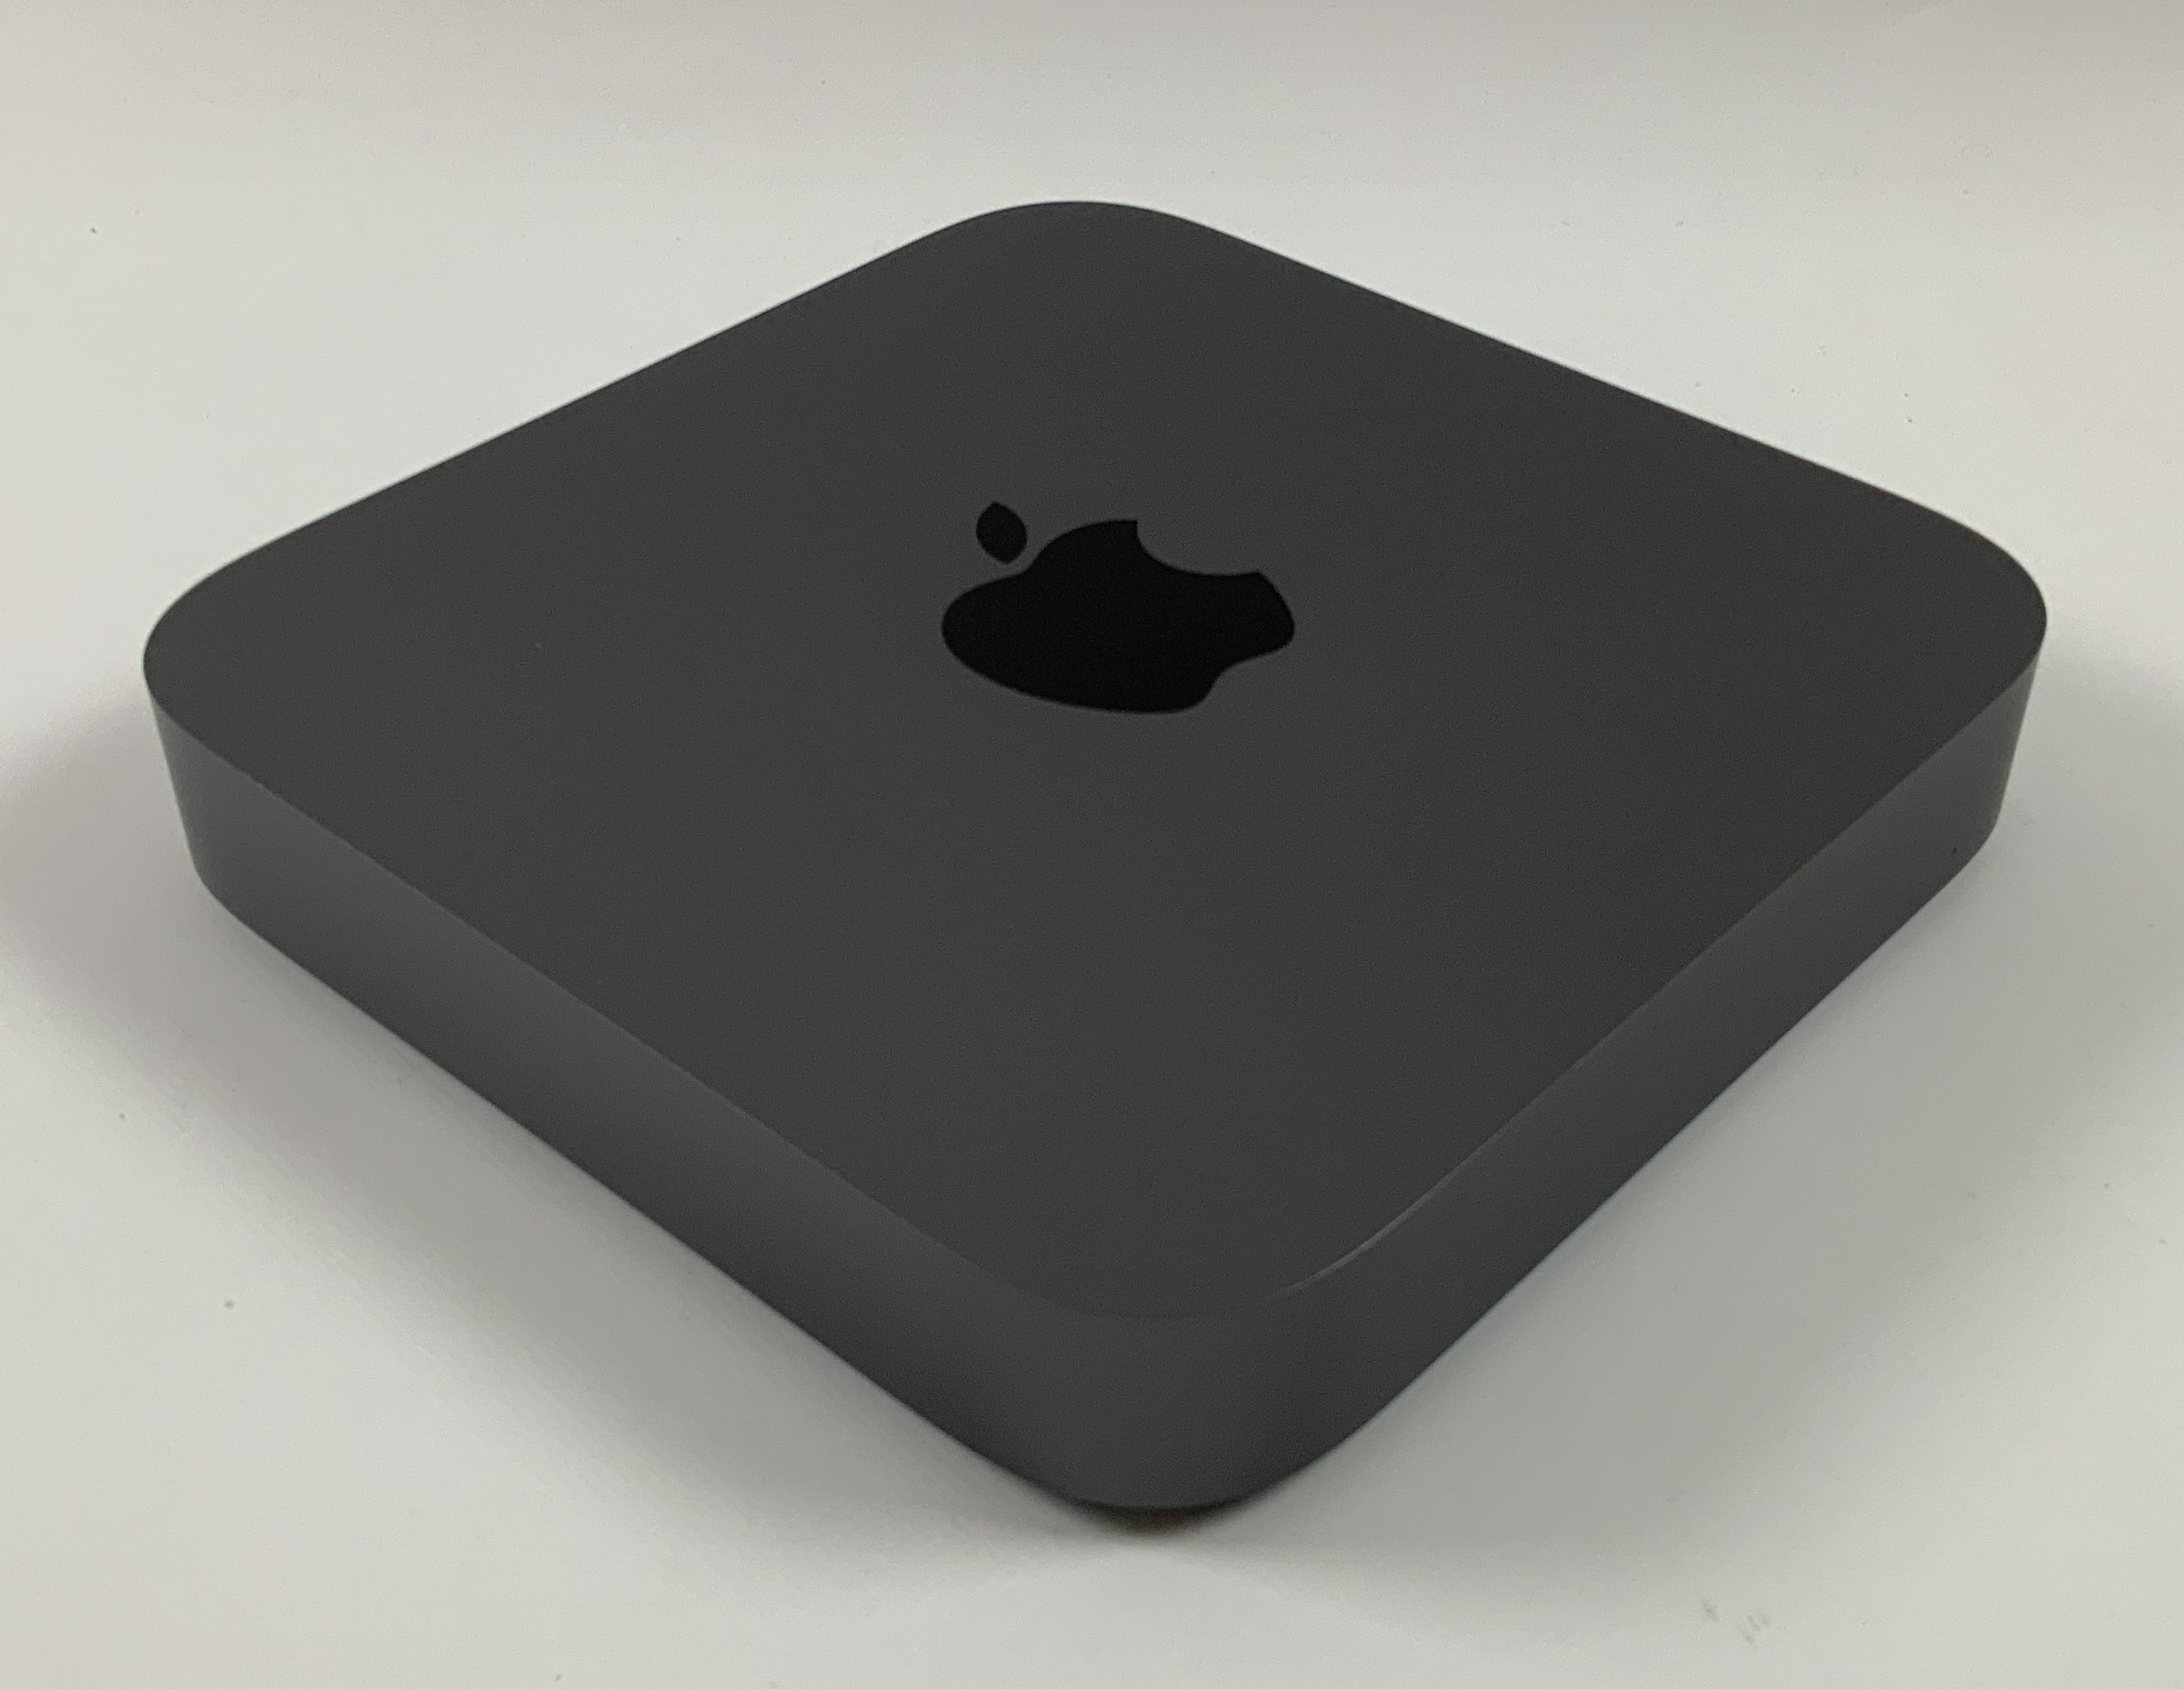 Mac Mini Late 2018 (Intel 6-Core i7 3.2 GHz 8 GB RAM 256 GB SSD), Intel 6-Core i7 3.2 GHz, 8 GB RAM, 256 GB SSD, image 2